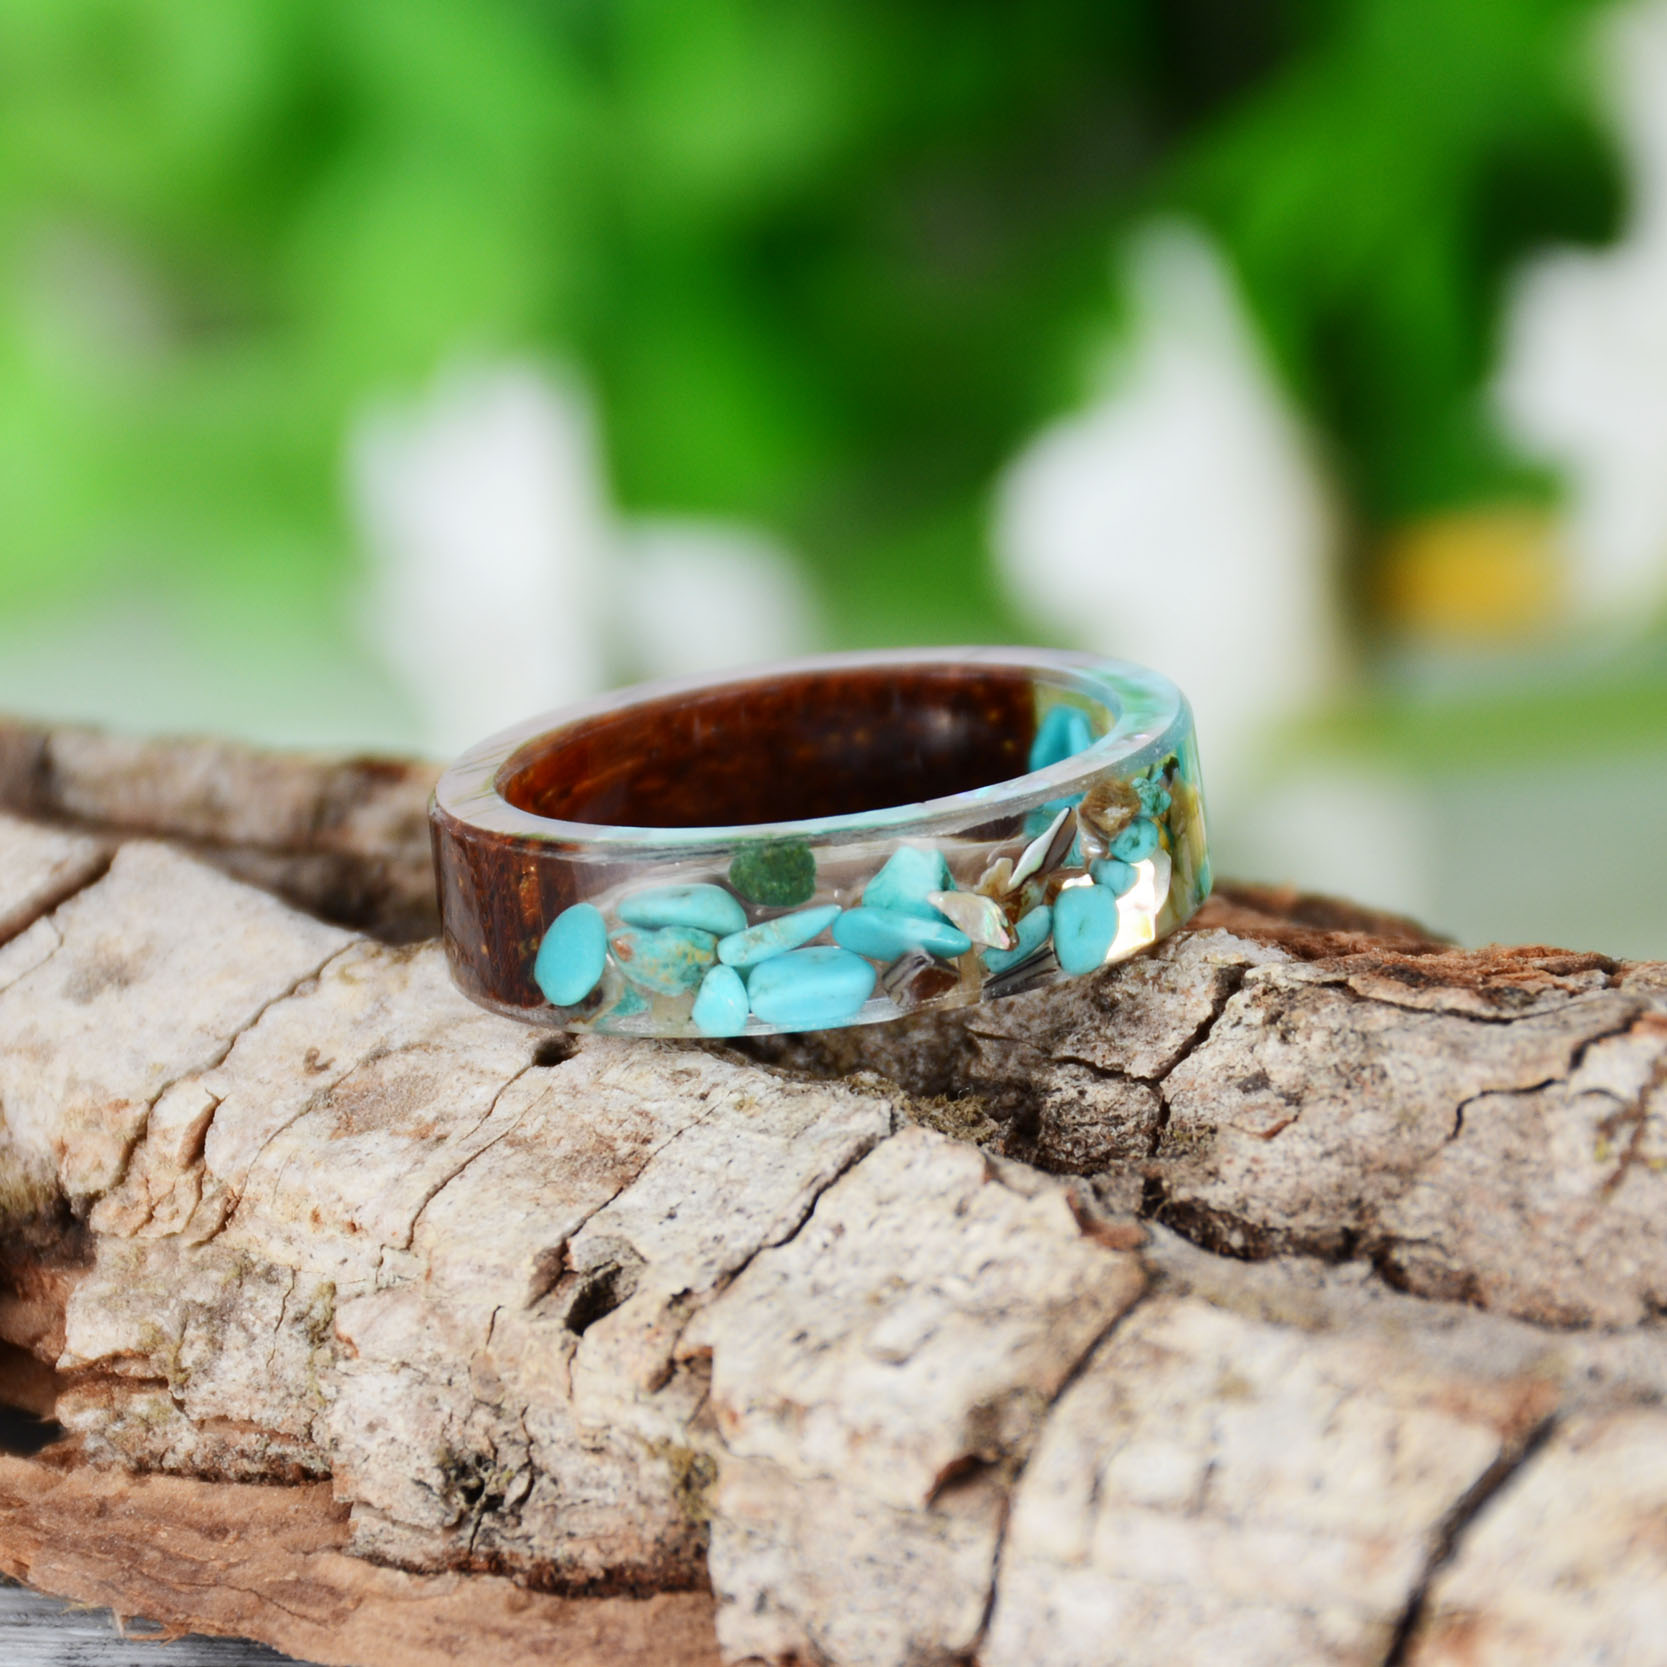 HTB16qOdB2iSBuNkSnhJq6zDcpXaN - Hot Sale Handmade Wood Resin Ring Dried Flowers Plants Inside Jewelry Resin Ring Transparent Anniversary Ring for Women